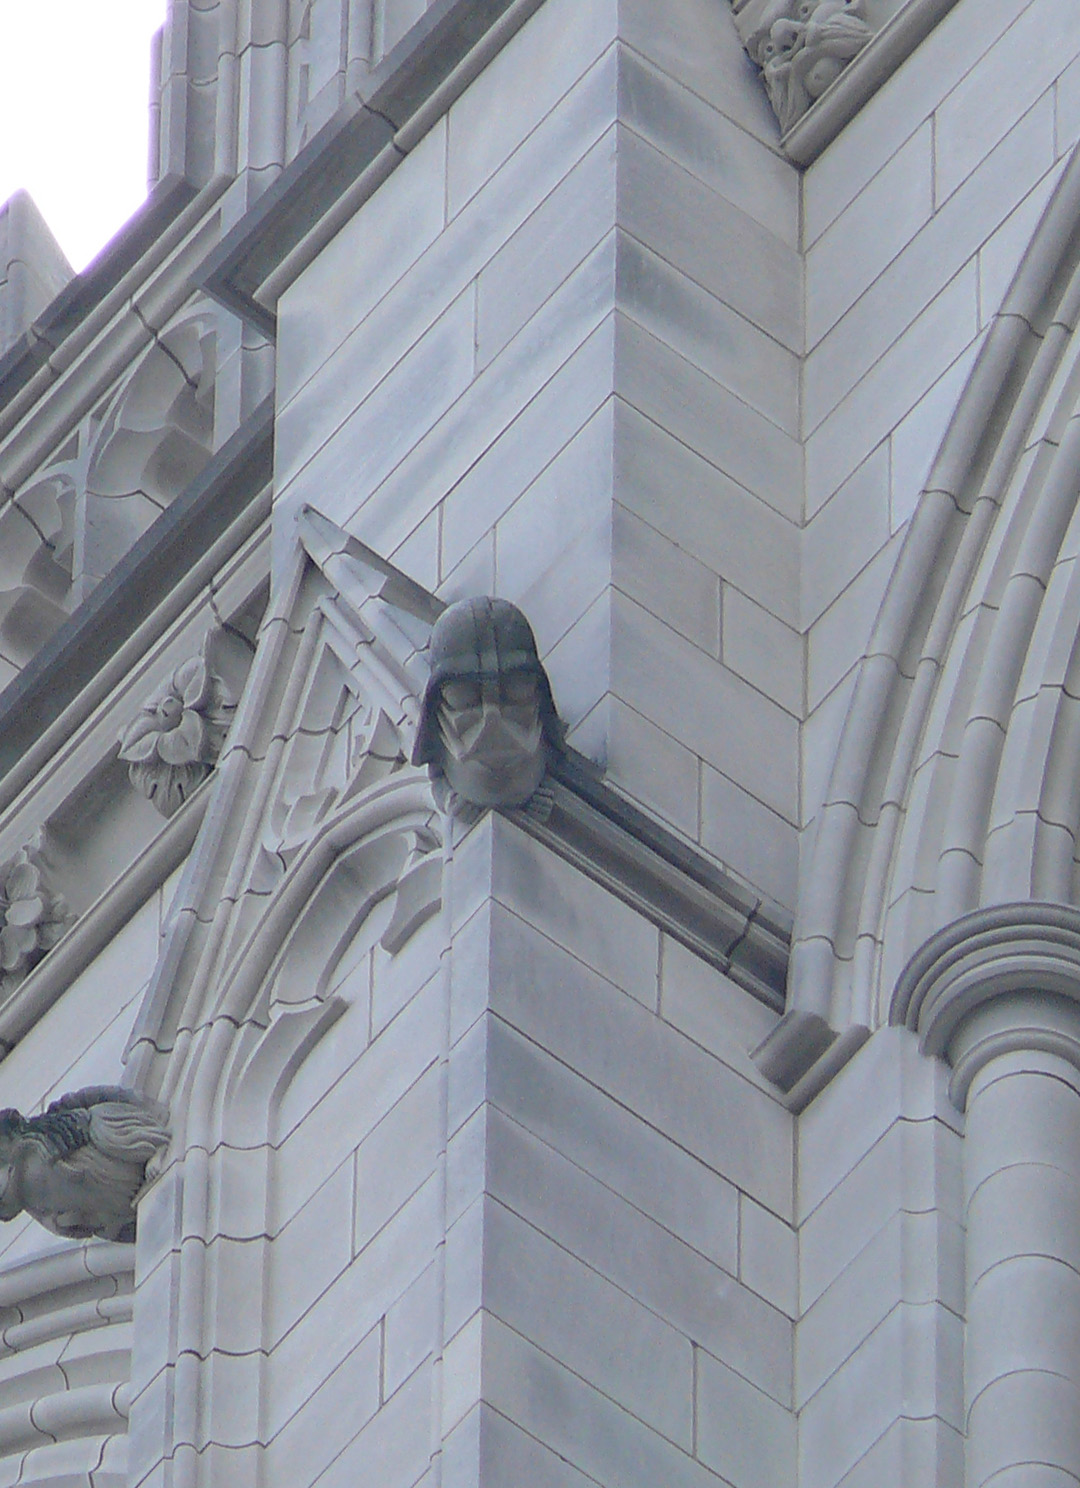 It should not be that surprising that in a contemporary cathedral we find, among the gargoyles, what may be one of the better known representations of evil of our times: Darth Vader, the former Jedi who decided to surrender to the dark side. Pic by Cyraxote.